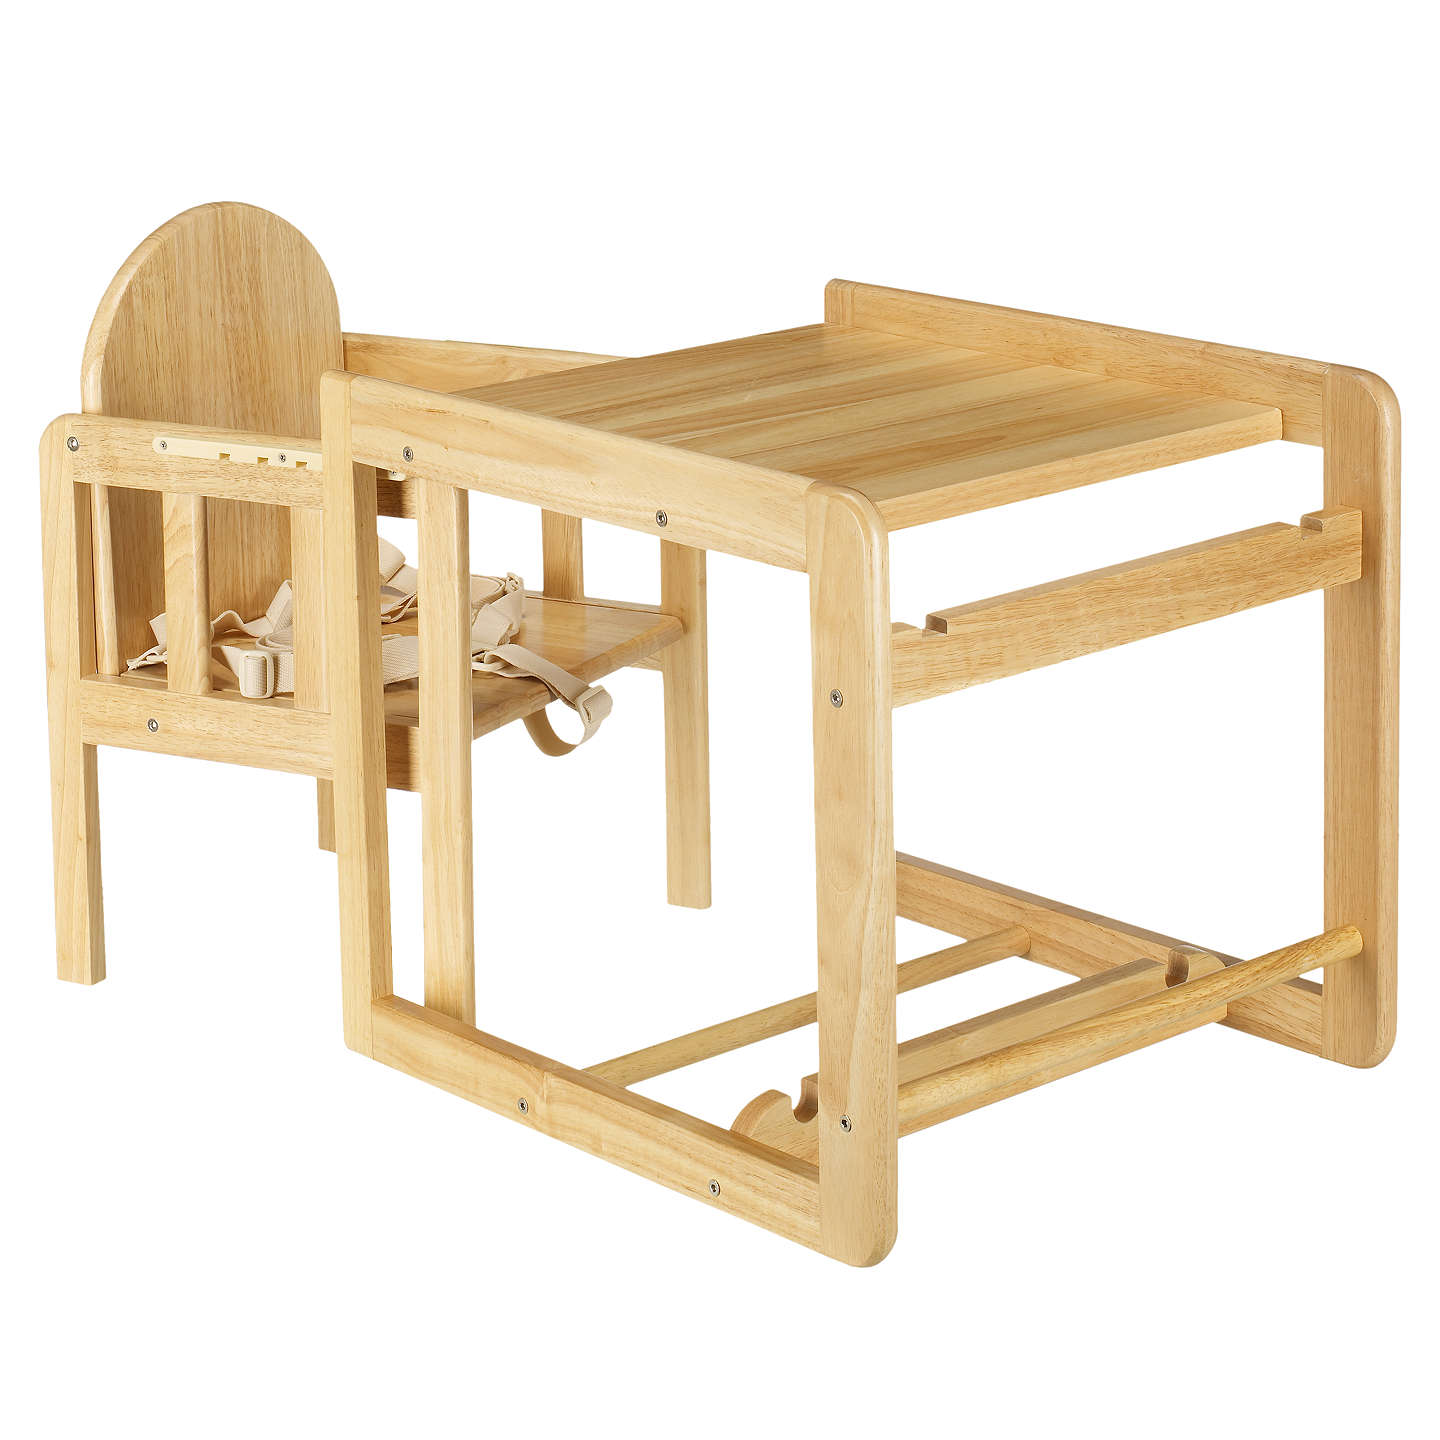 East Coast bination Wooden Highchair at John Lewis